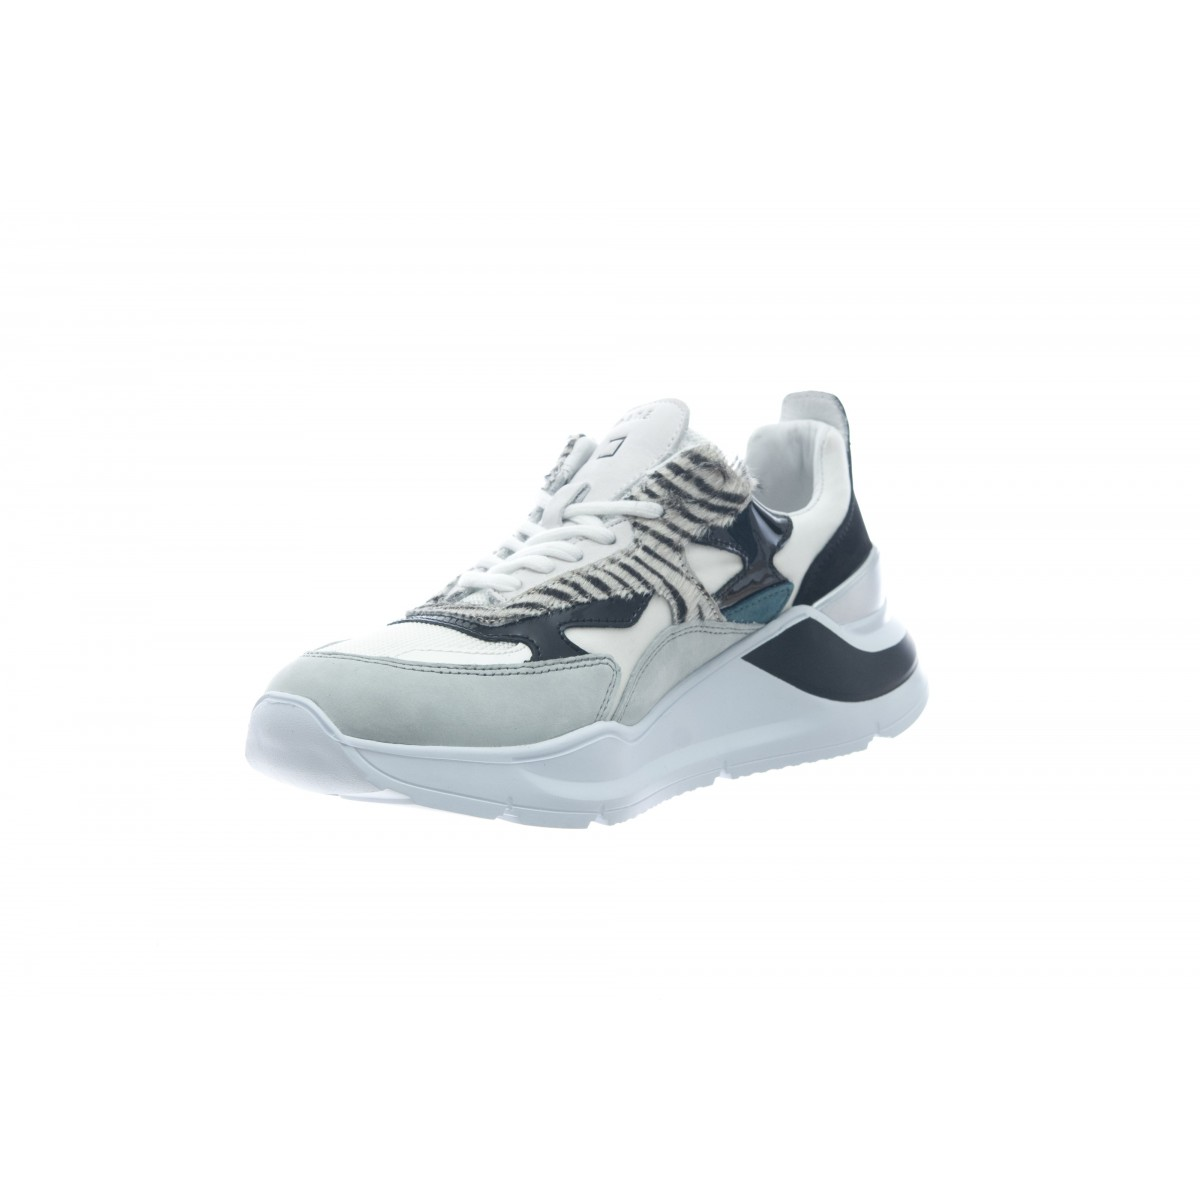 Scarpa - Fuga animalie white black